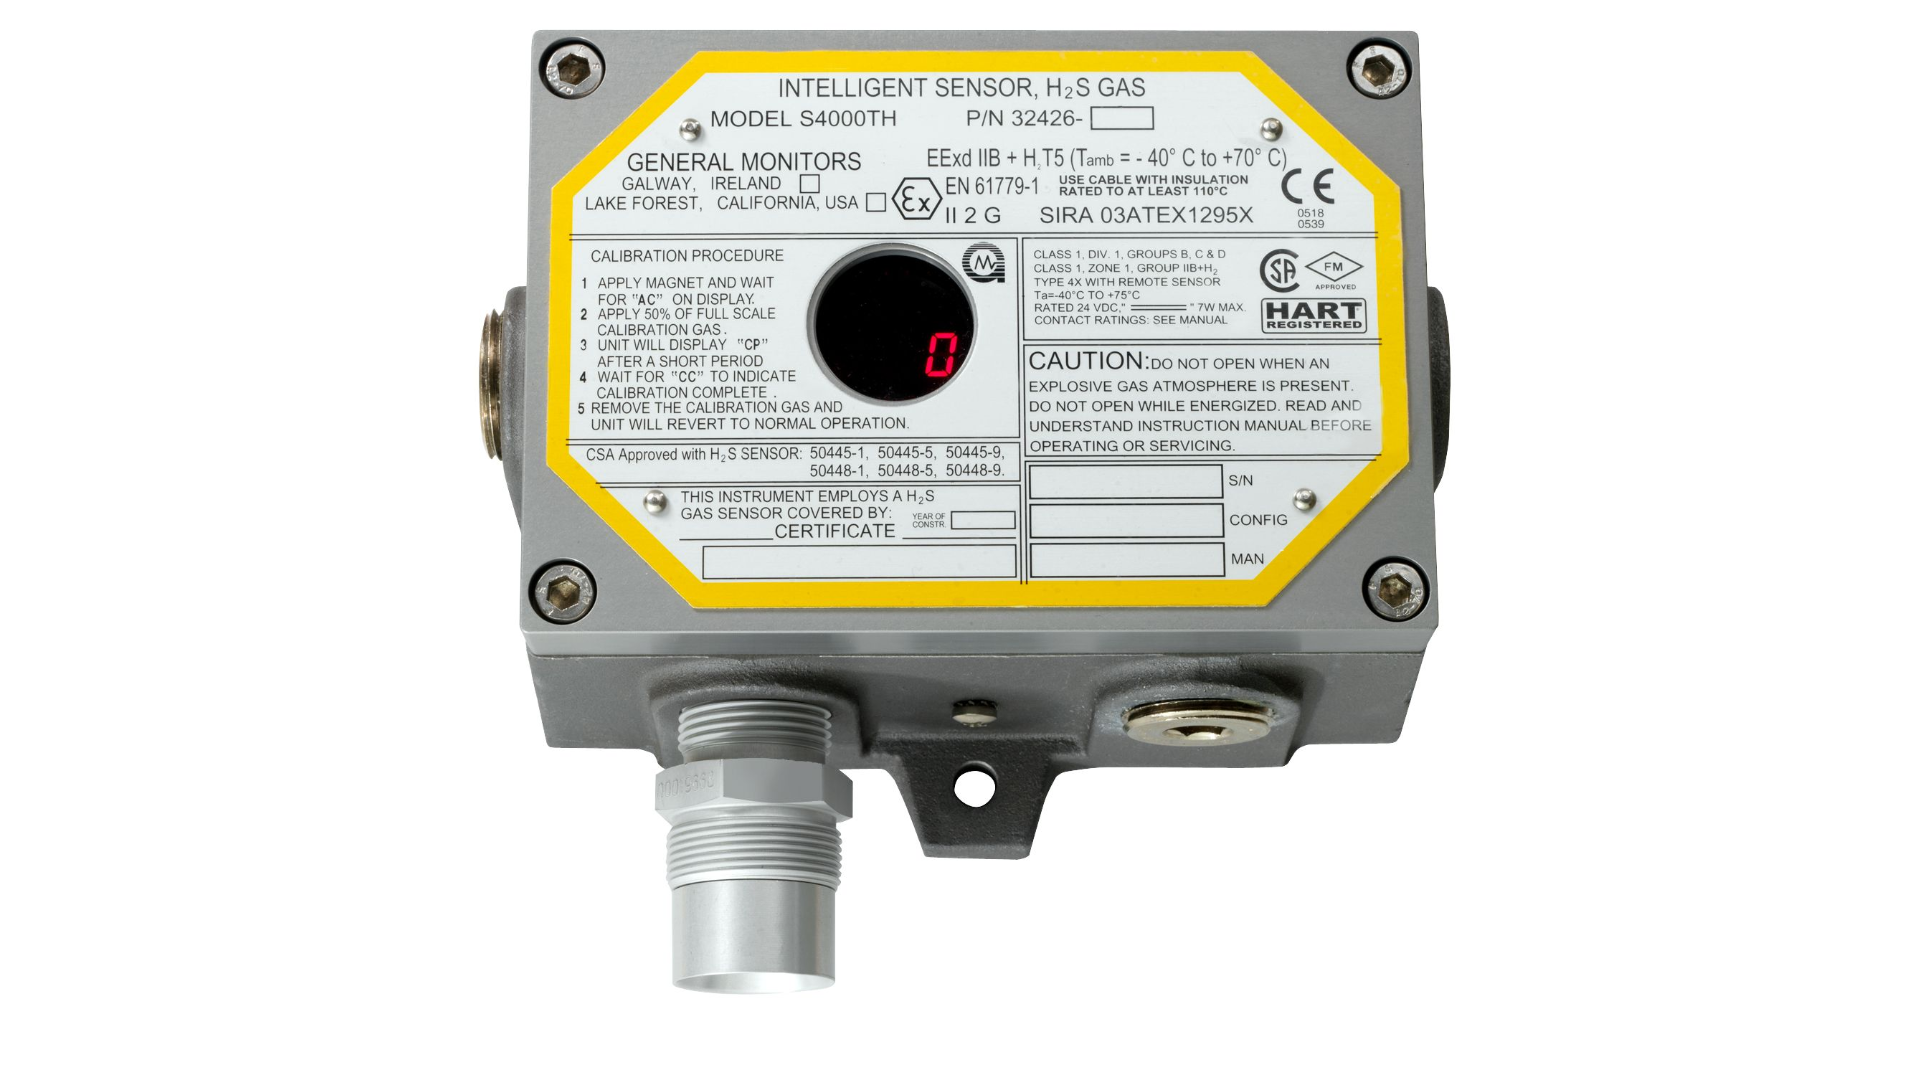 Original Image: General Monitors S4000TH H2S Gas Detector